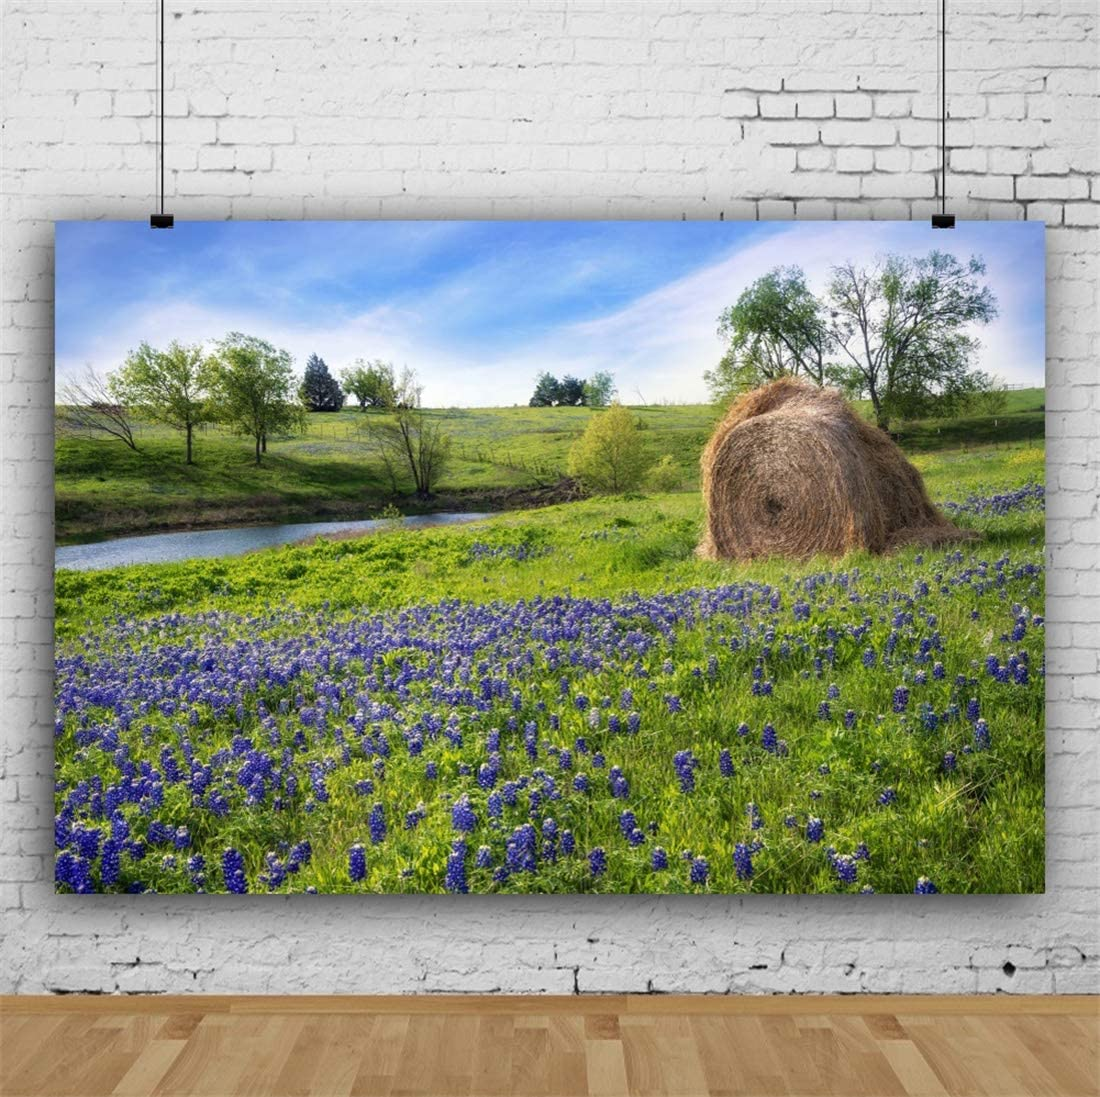 Yeele 10x8ft Forest Spring Landscape Photography Background Lakeside Haystack Stream Purple and Blue Flower Green Plant Grassland Sunshine Picnic Party Decoration Photo Backdrop Adults Portrait